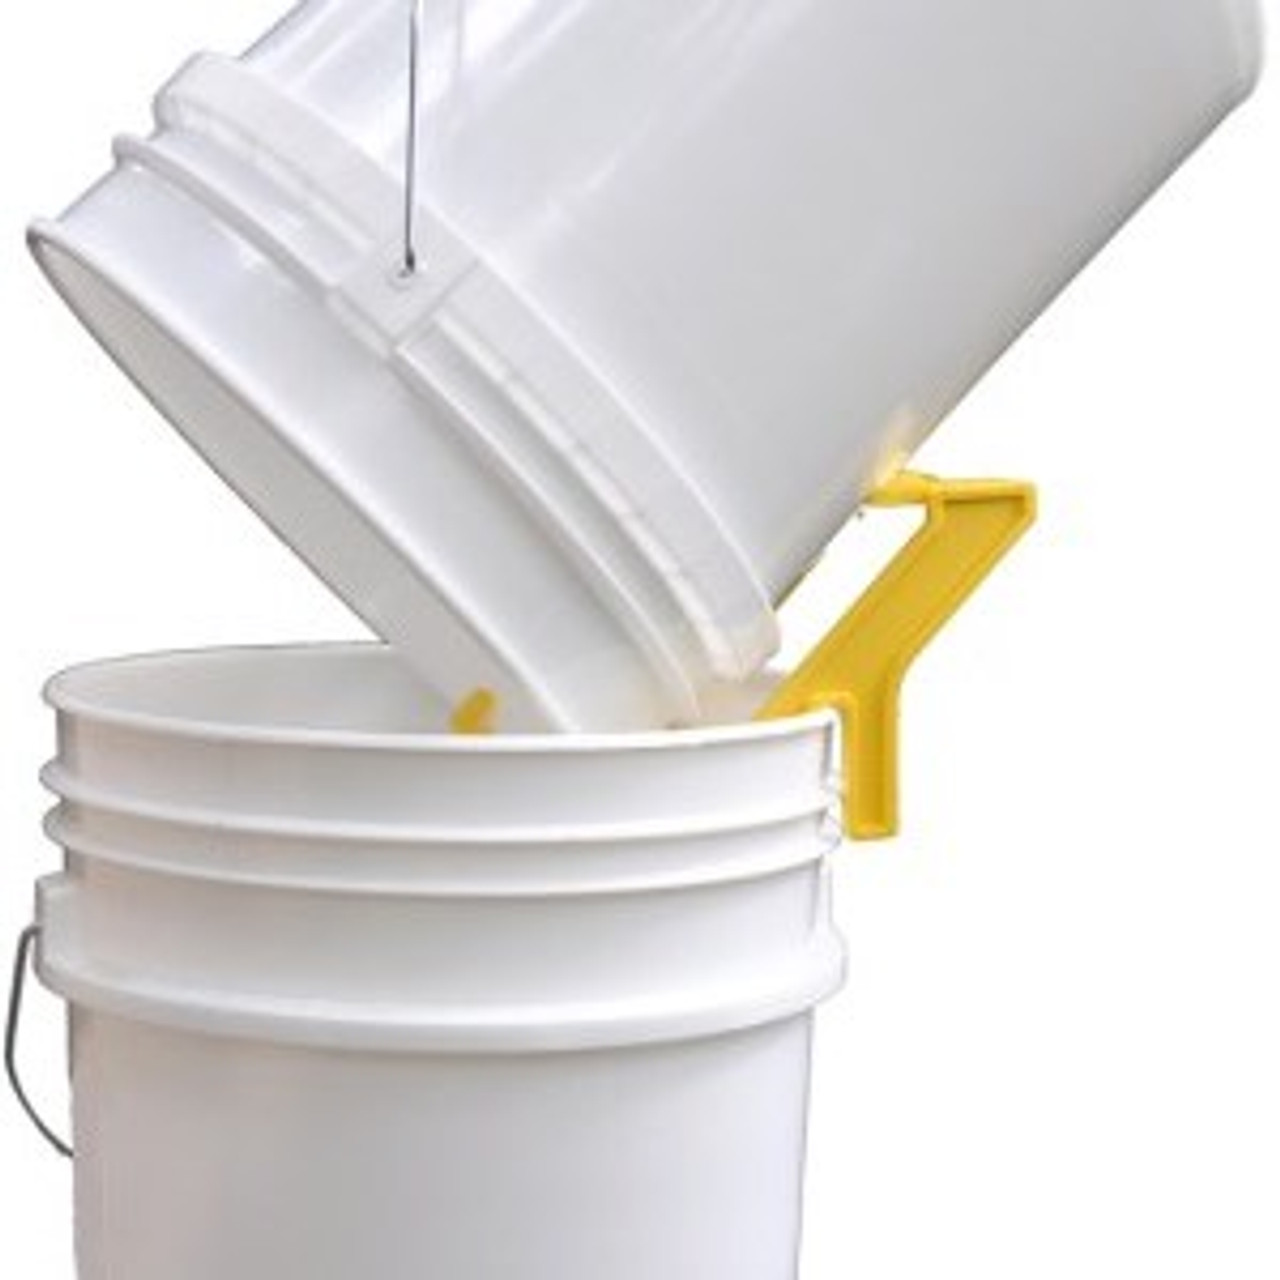 Bucket Tipper holds the bucket securely for you.